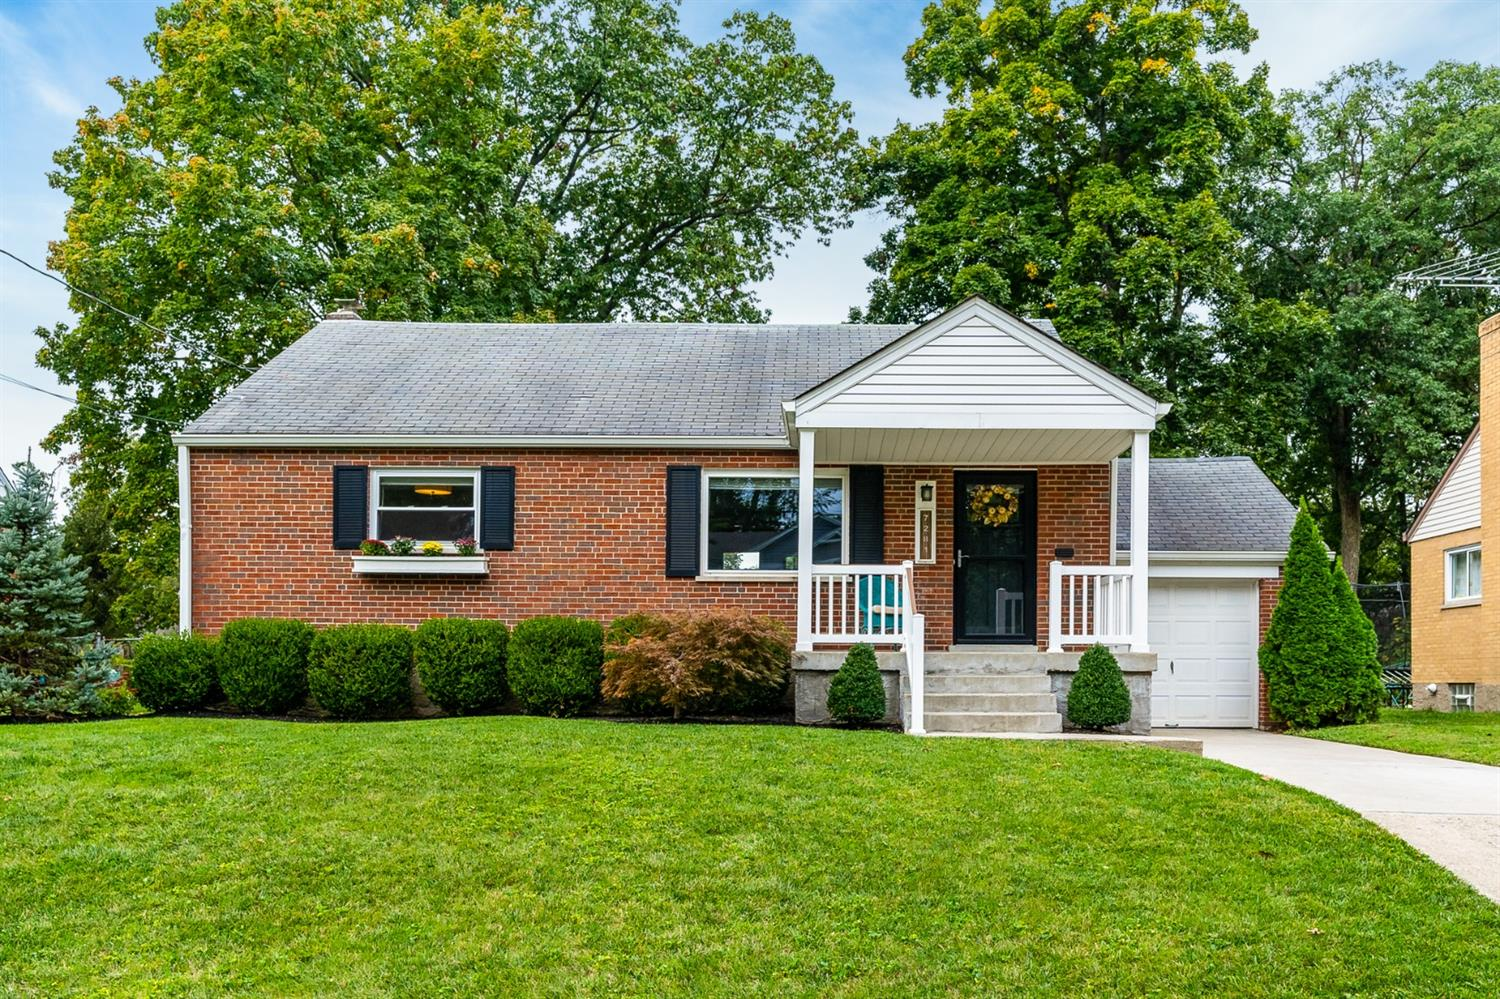 7281 Jethve Lane, Madeira, Ohio 45243, 4 Bedrooms Bedrooms, 9 Rooms Rooms,2 BathroomsBathrooms,Single Family Residence,For Sale,Jethve,1718925